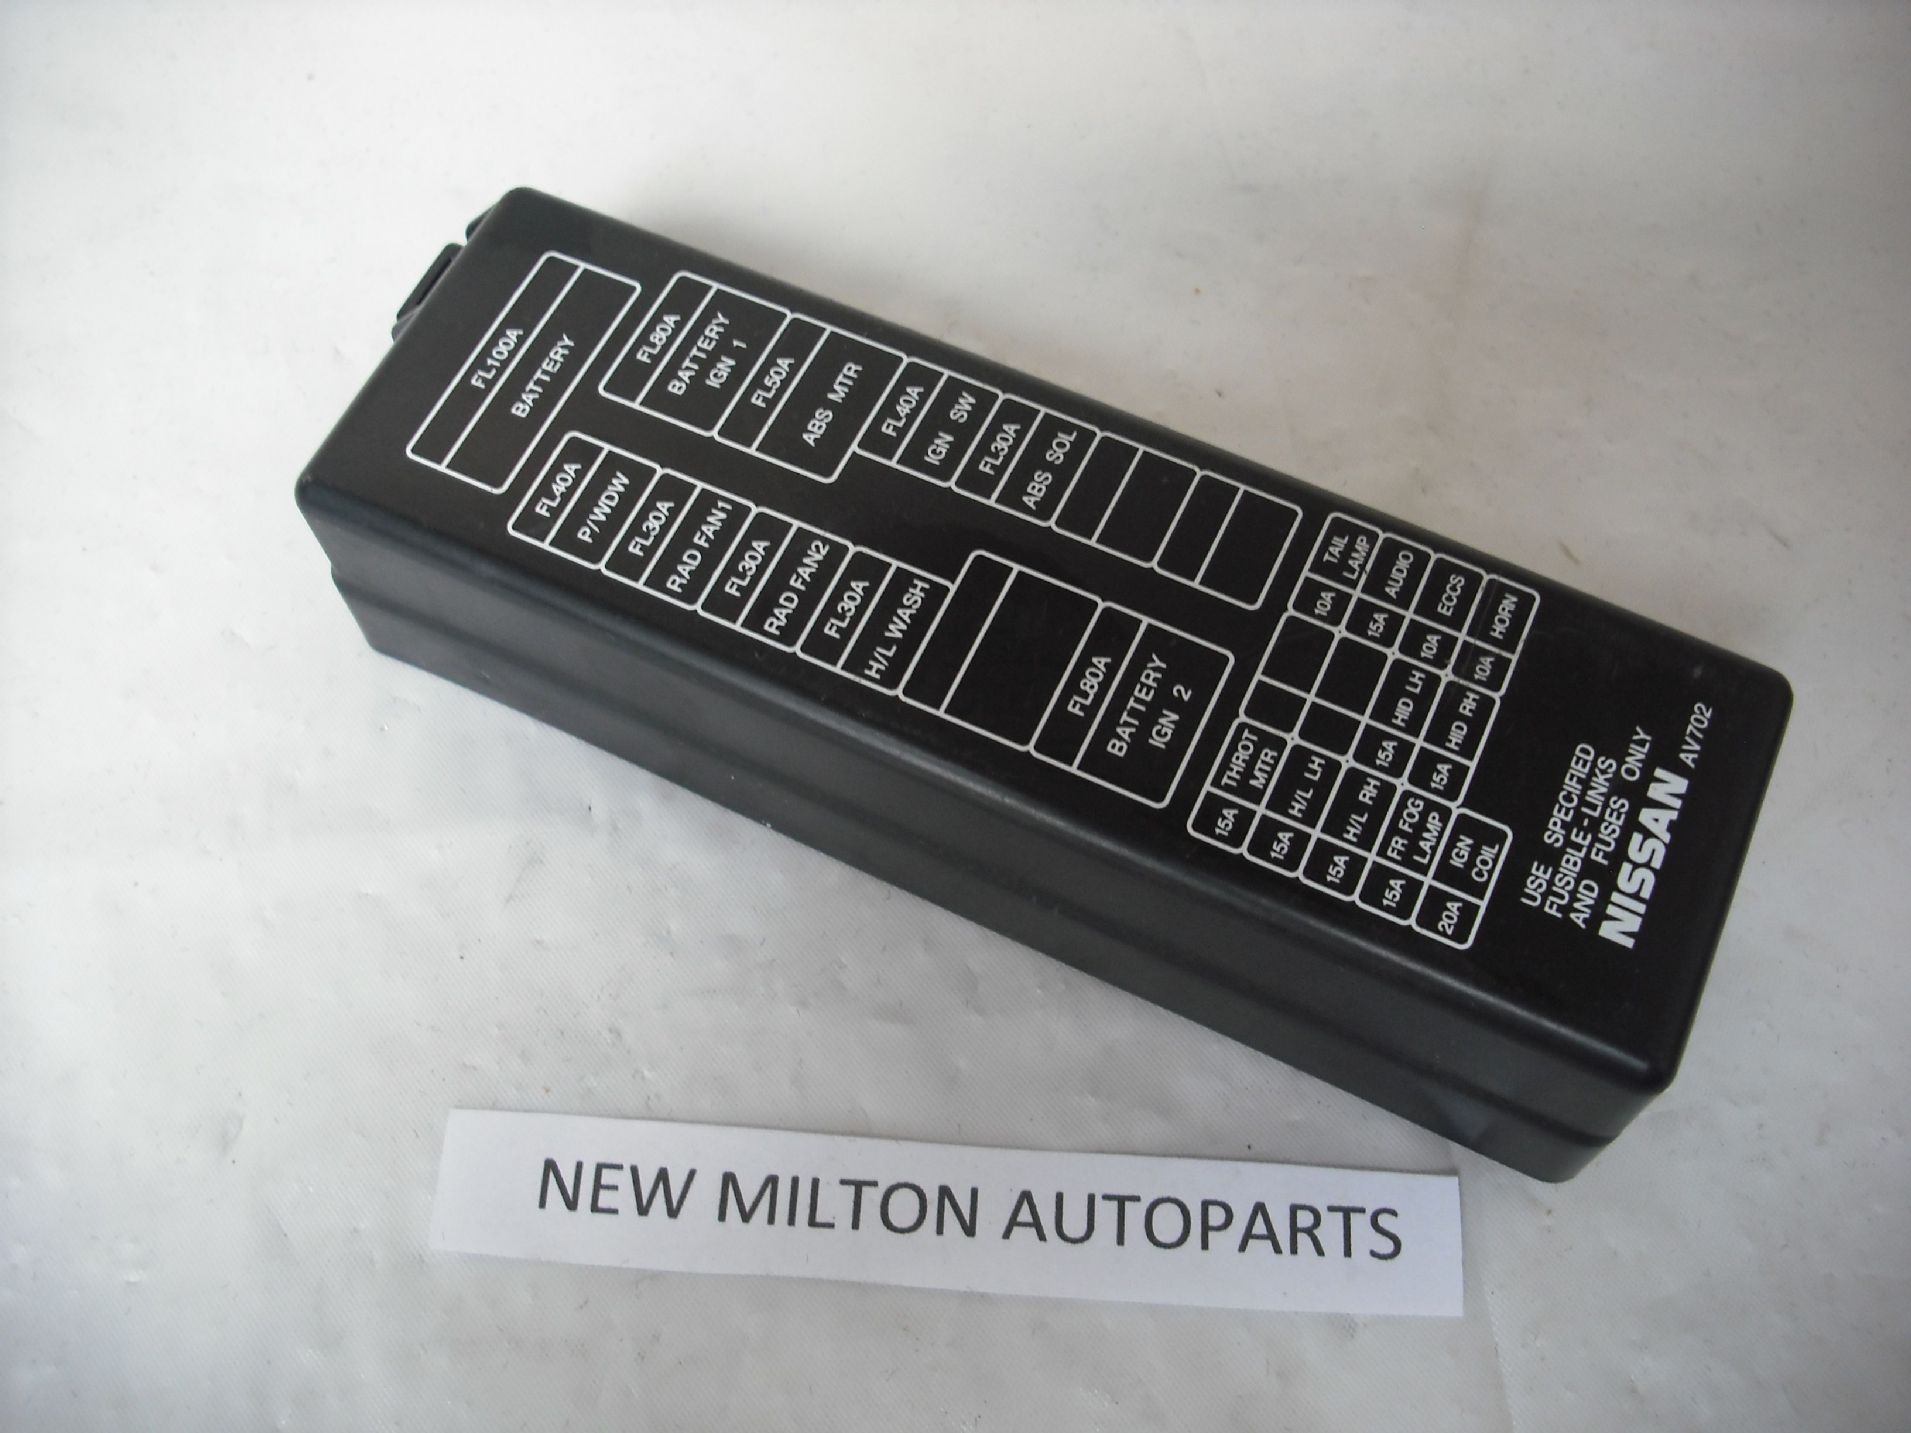 nissan primera p12 engine bay fuse box cover lid 2134 p fuse box lid blown fuse \u2022 wiring diagrams j squared co bmw 2002 fuse box cover at gsmportal.co